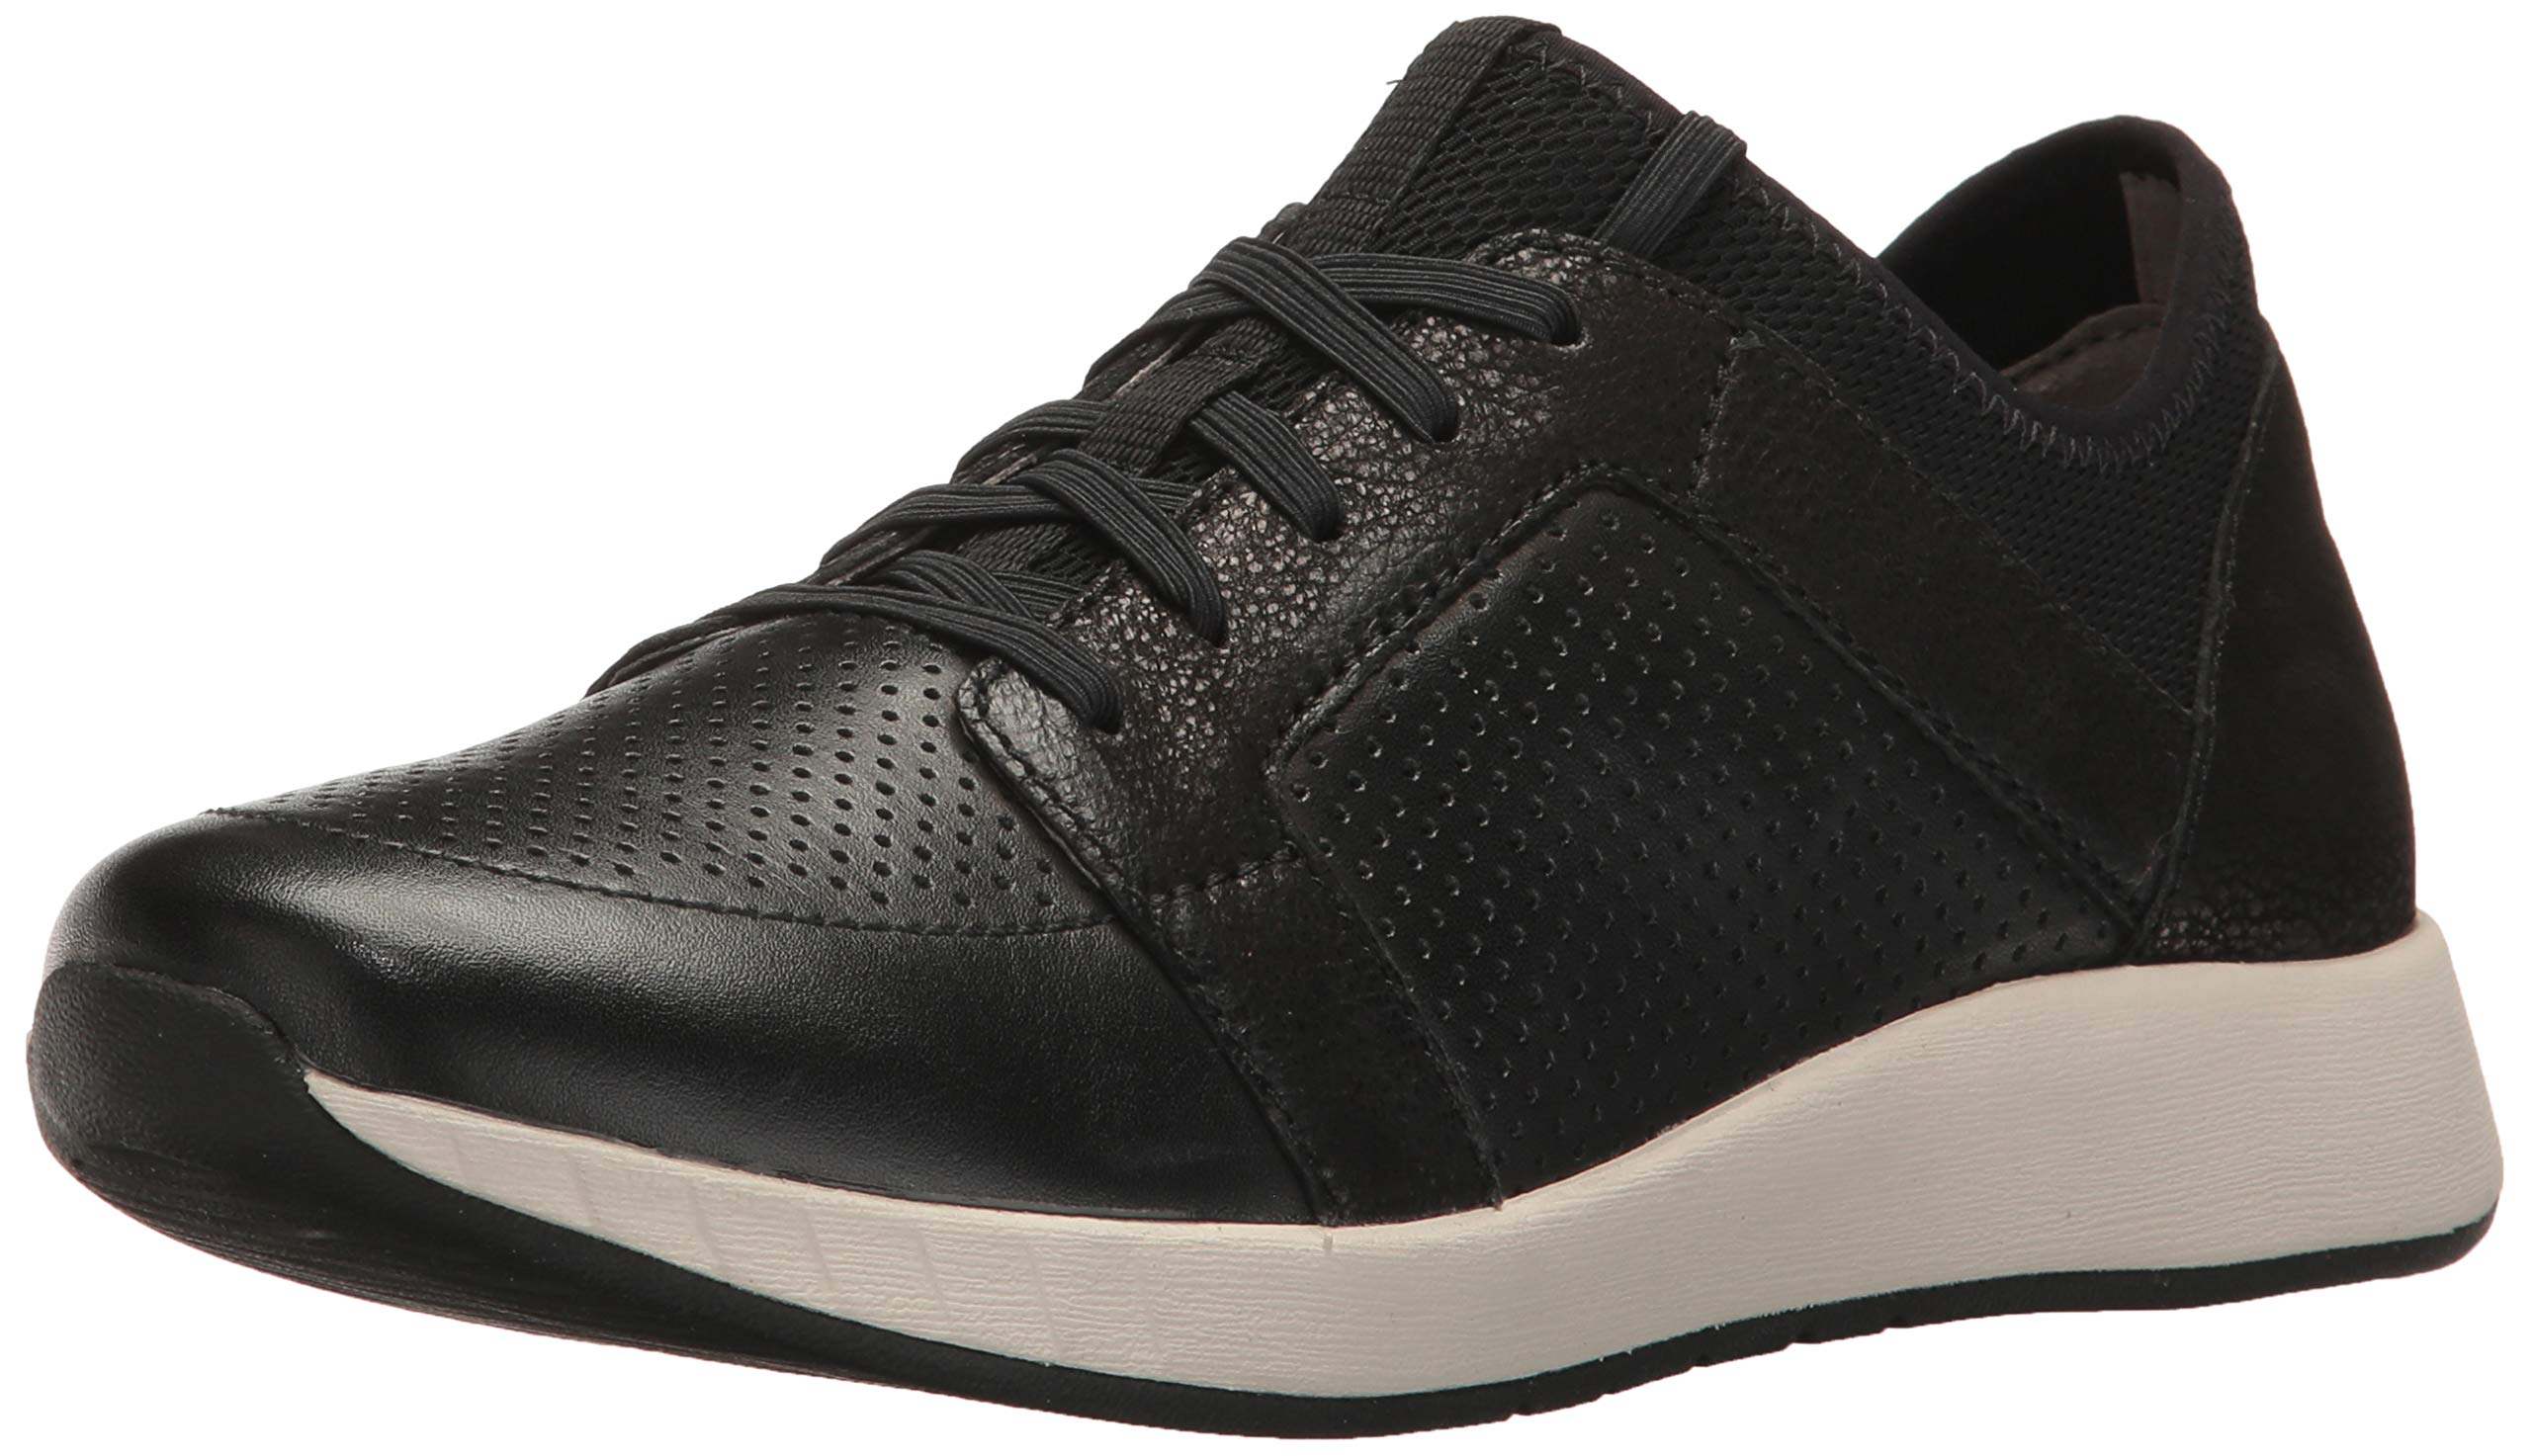 Dansko Womens Cozette Sneaker Black